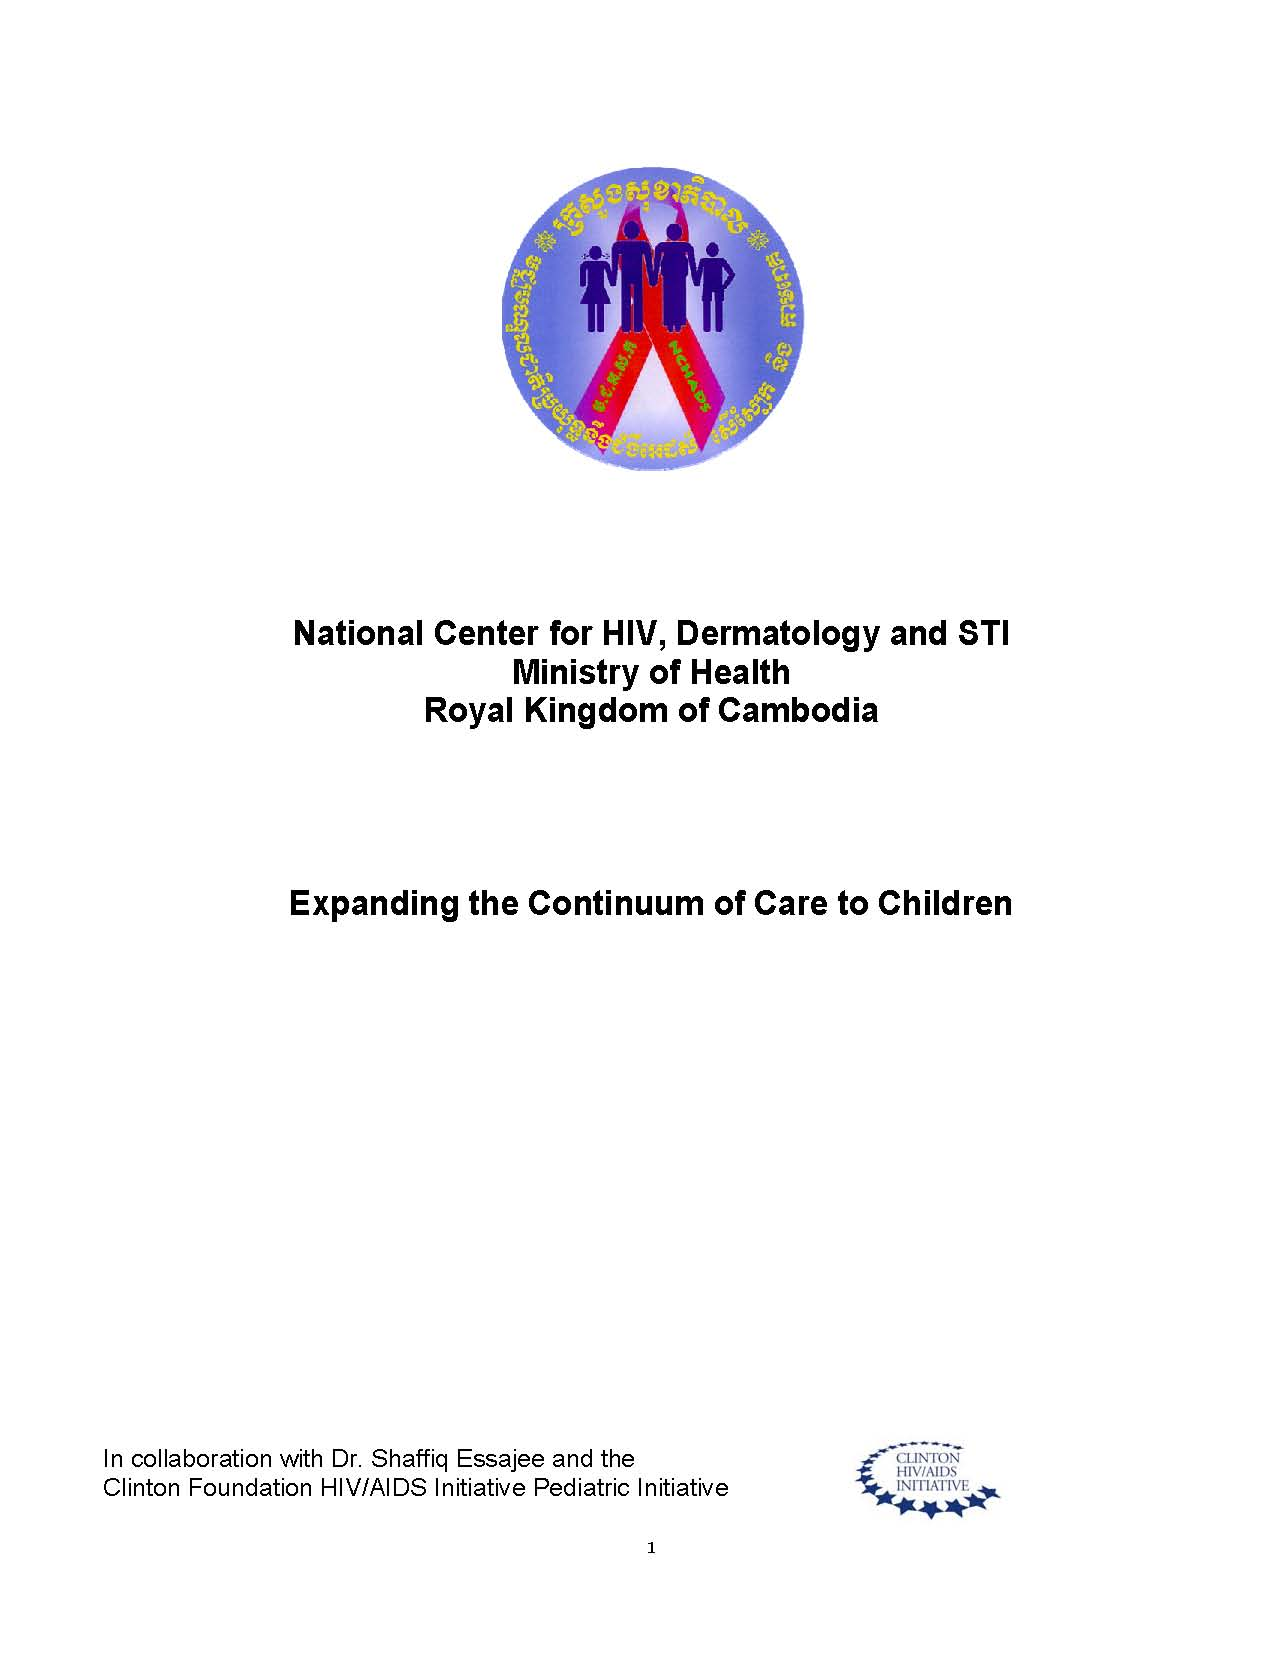 Expanding the Continuum of Care to Children